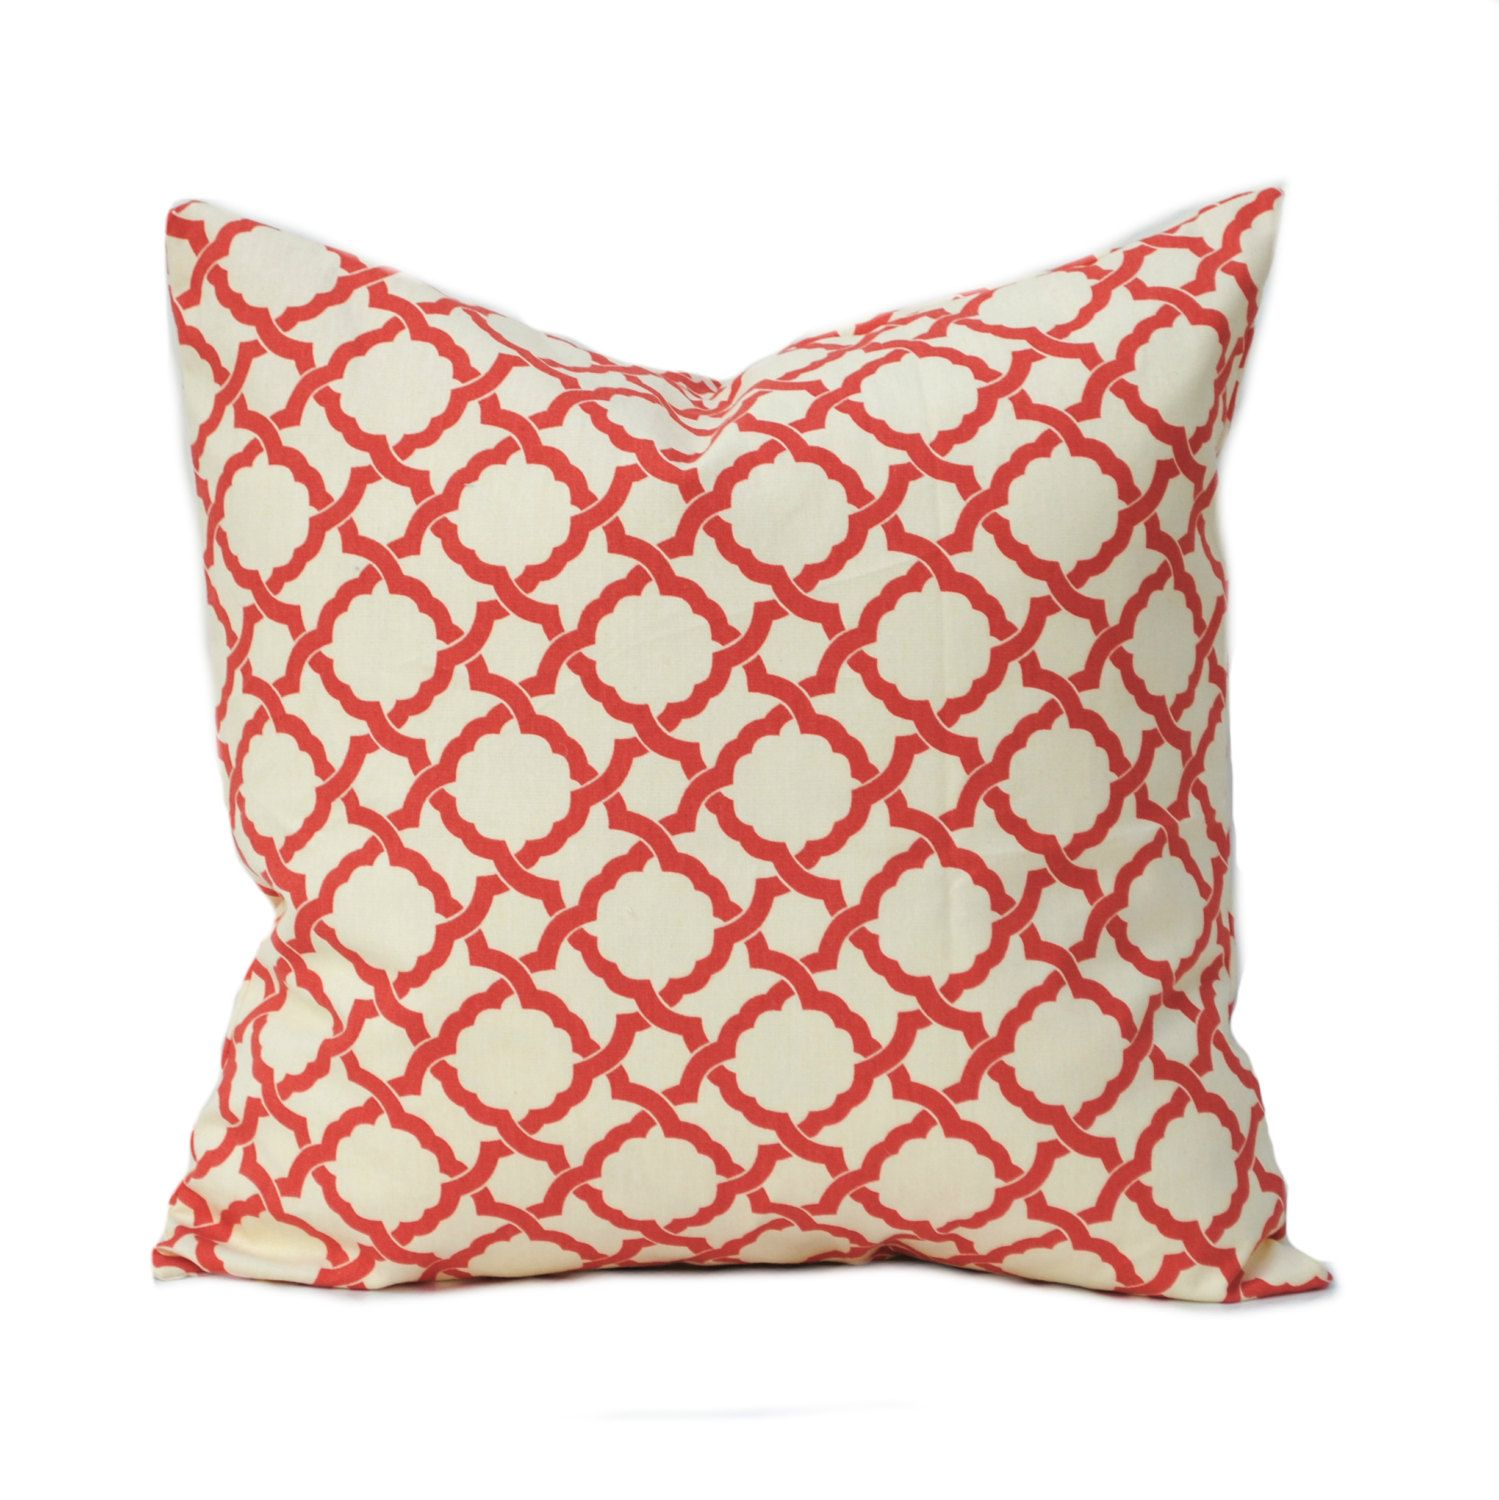 One Waverly Pillow Cover Home Decor Decorative Pillow Throw Pillow Coral Pillow Grey Pillow Medallion Pillow